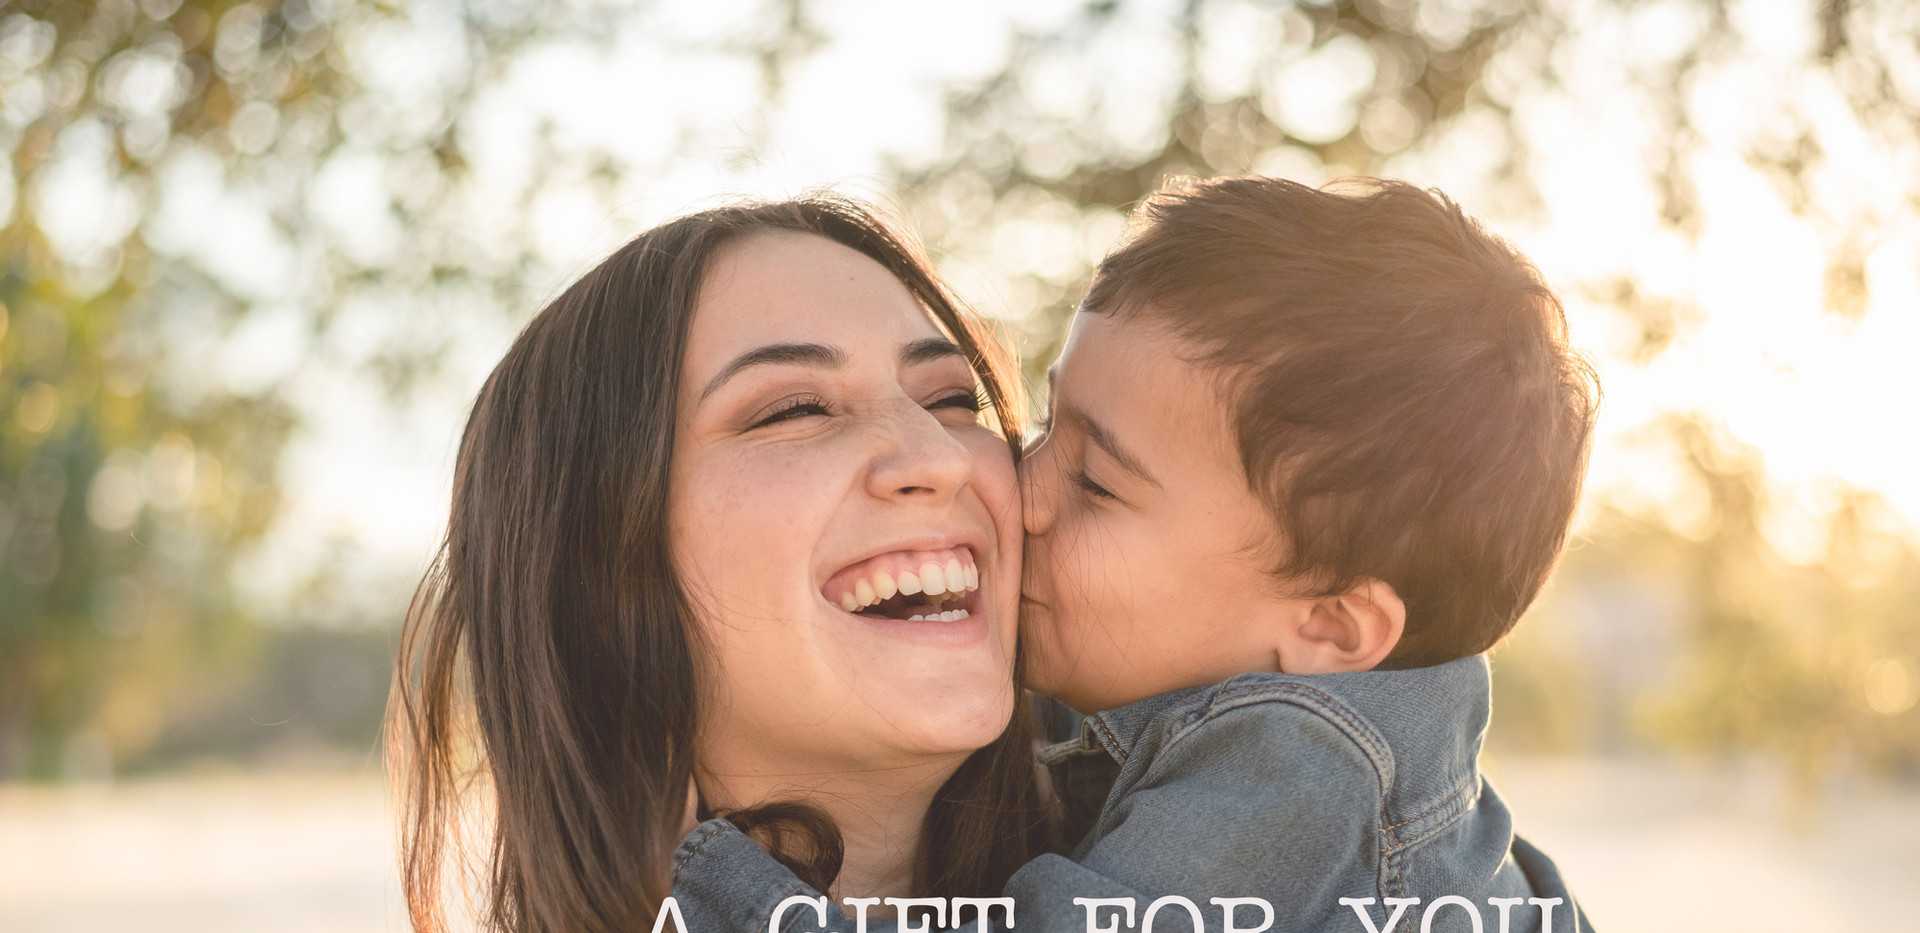 gift certificates for family photo sessions in austin tx